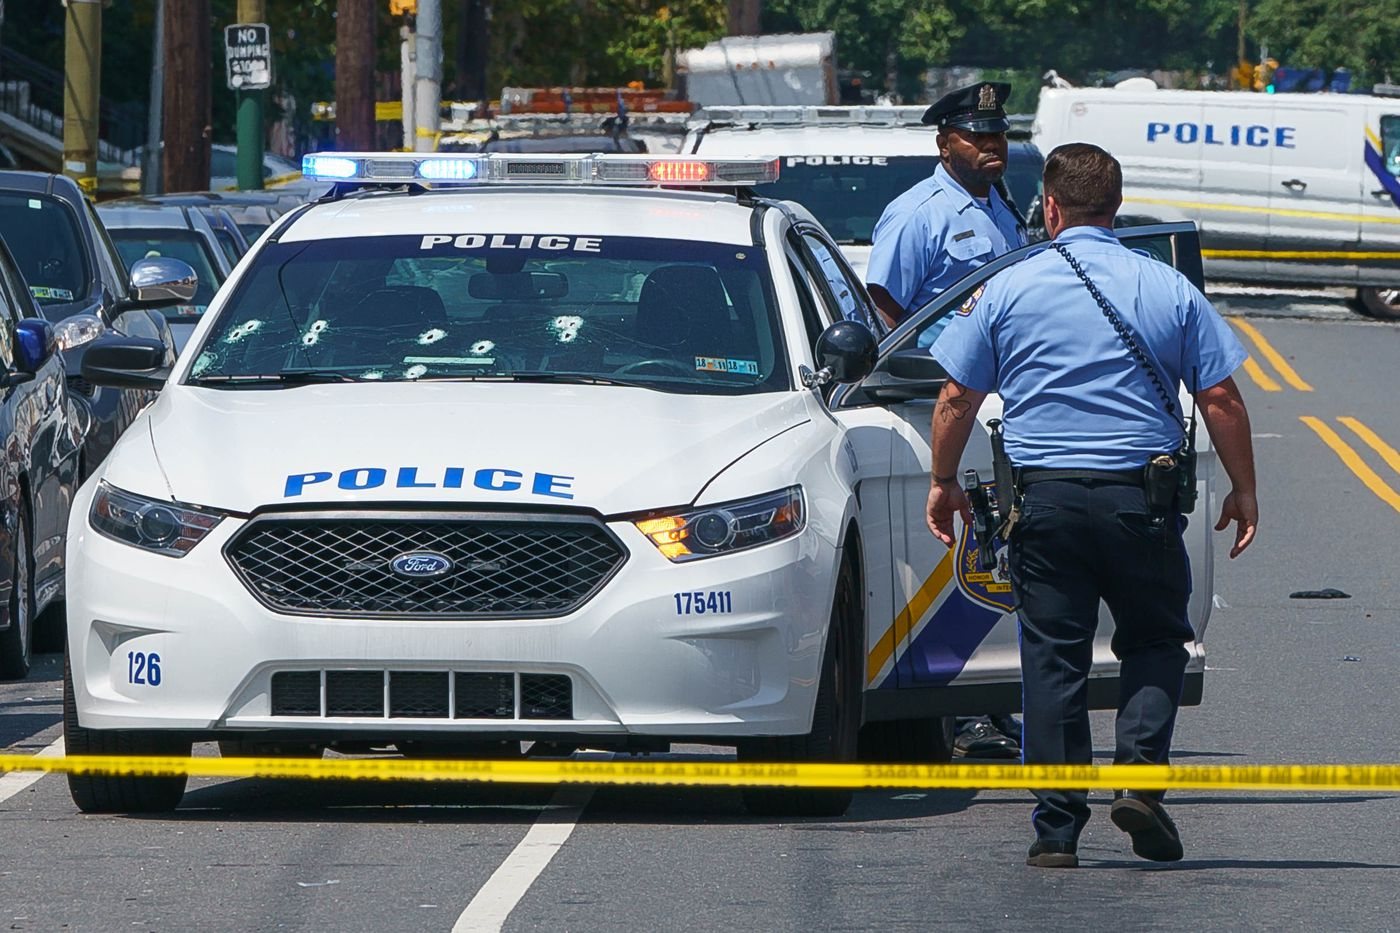 Man killed in shootout with police in South Philly